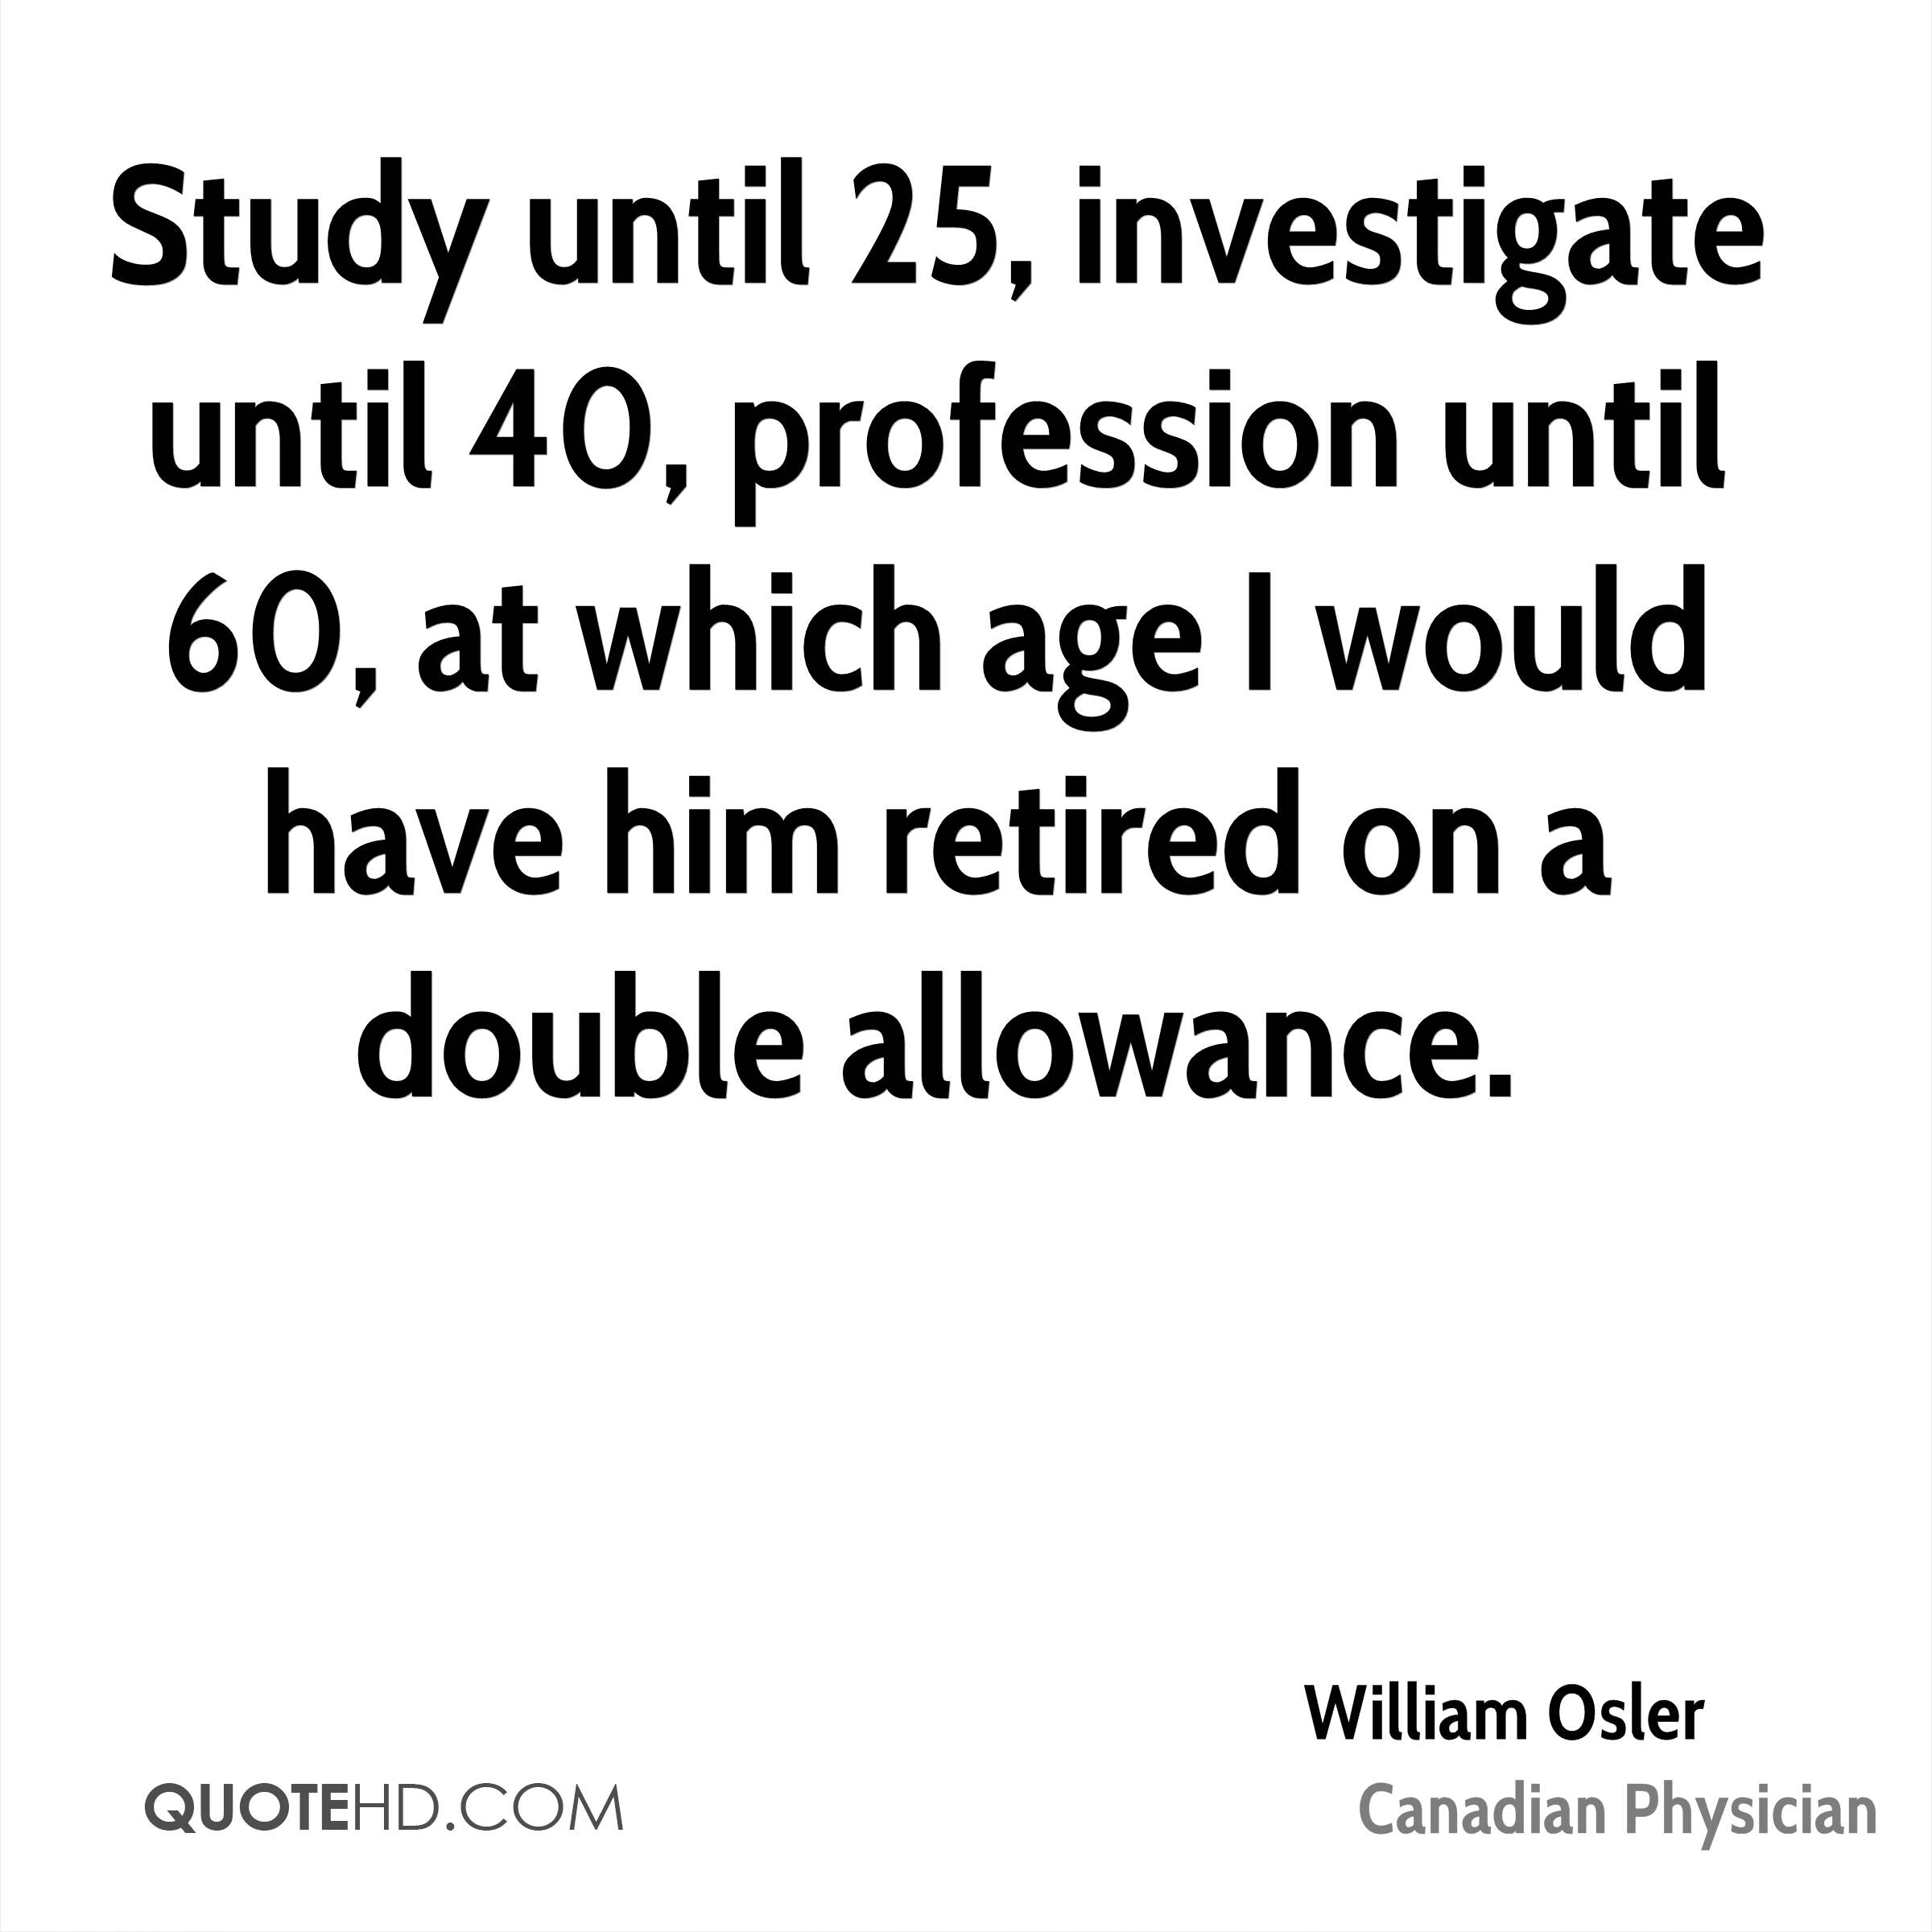 Study until 25, investigate until 40, profession until 60, at which age I would have him retired on a double allowance.